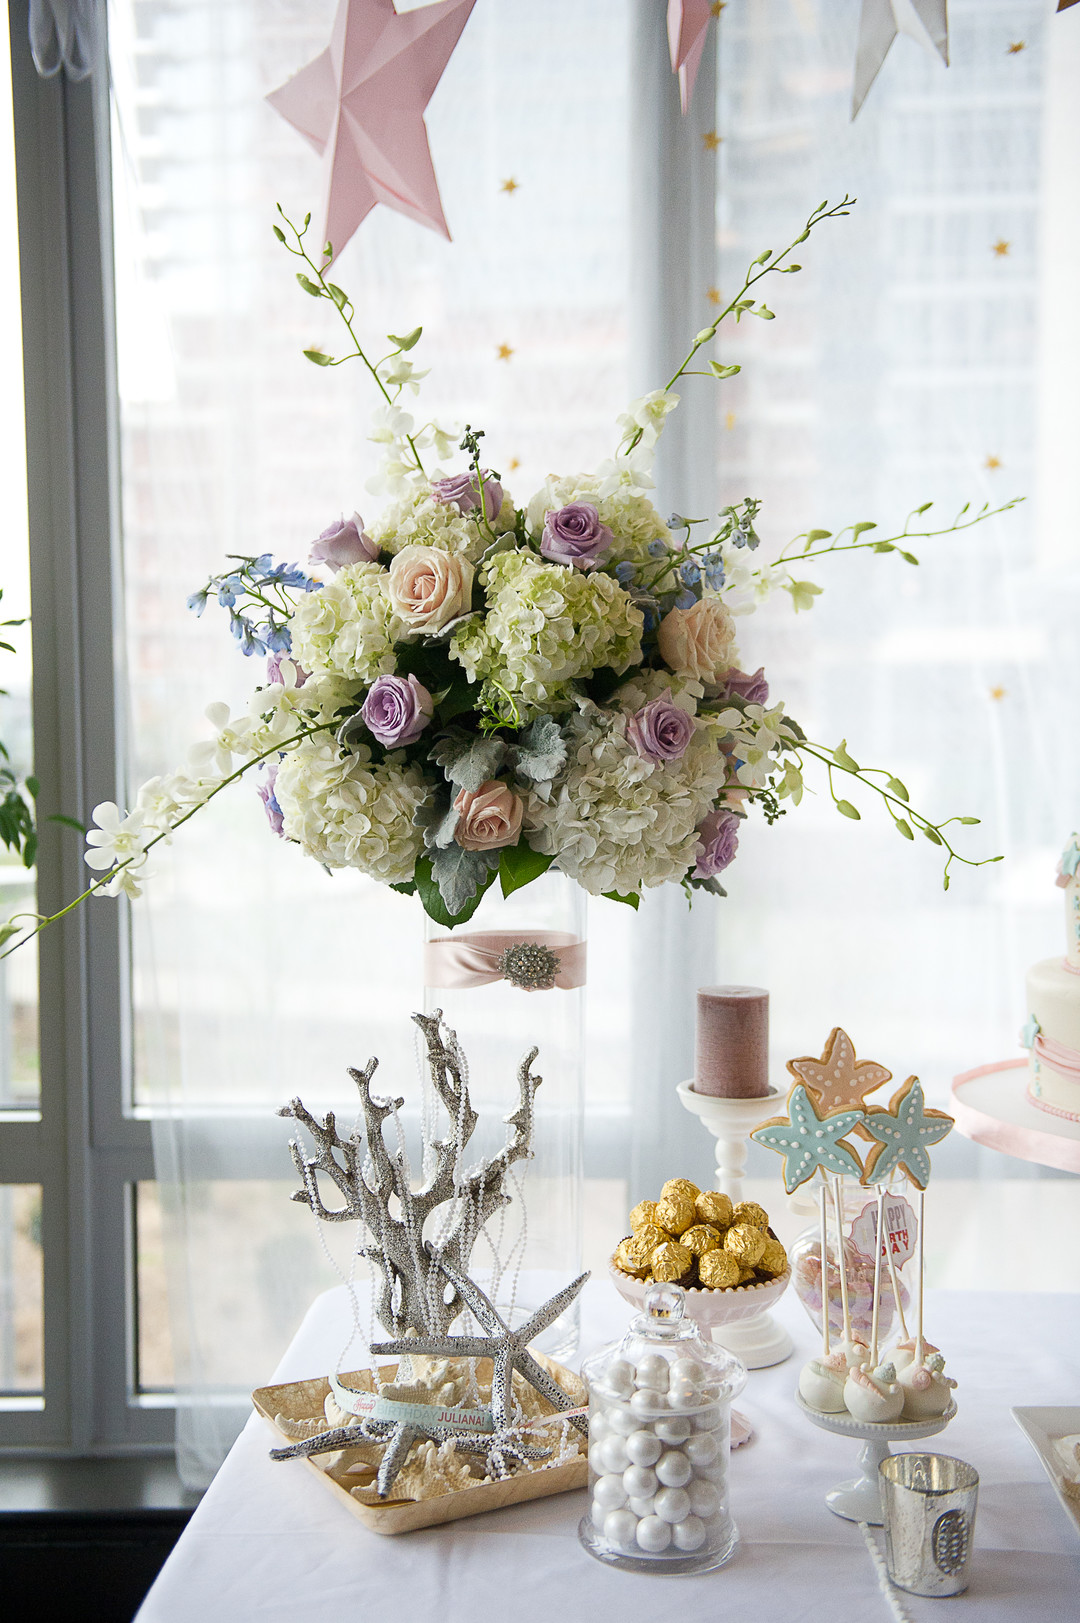 floating floral arrangement with hydrangeas at first birthday party